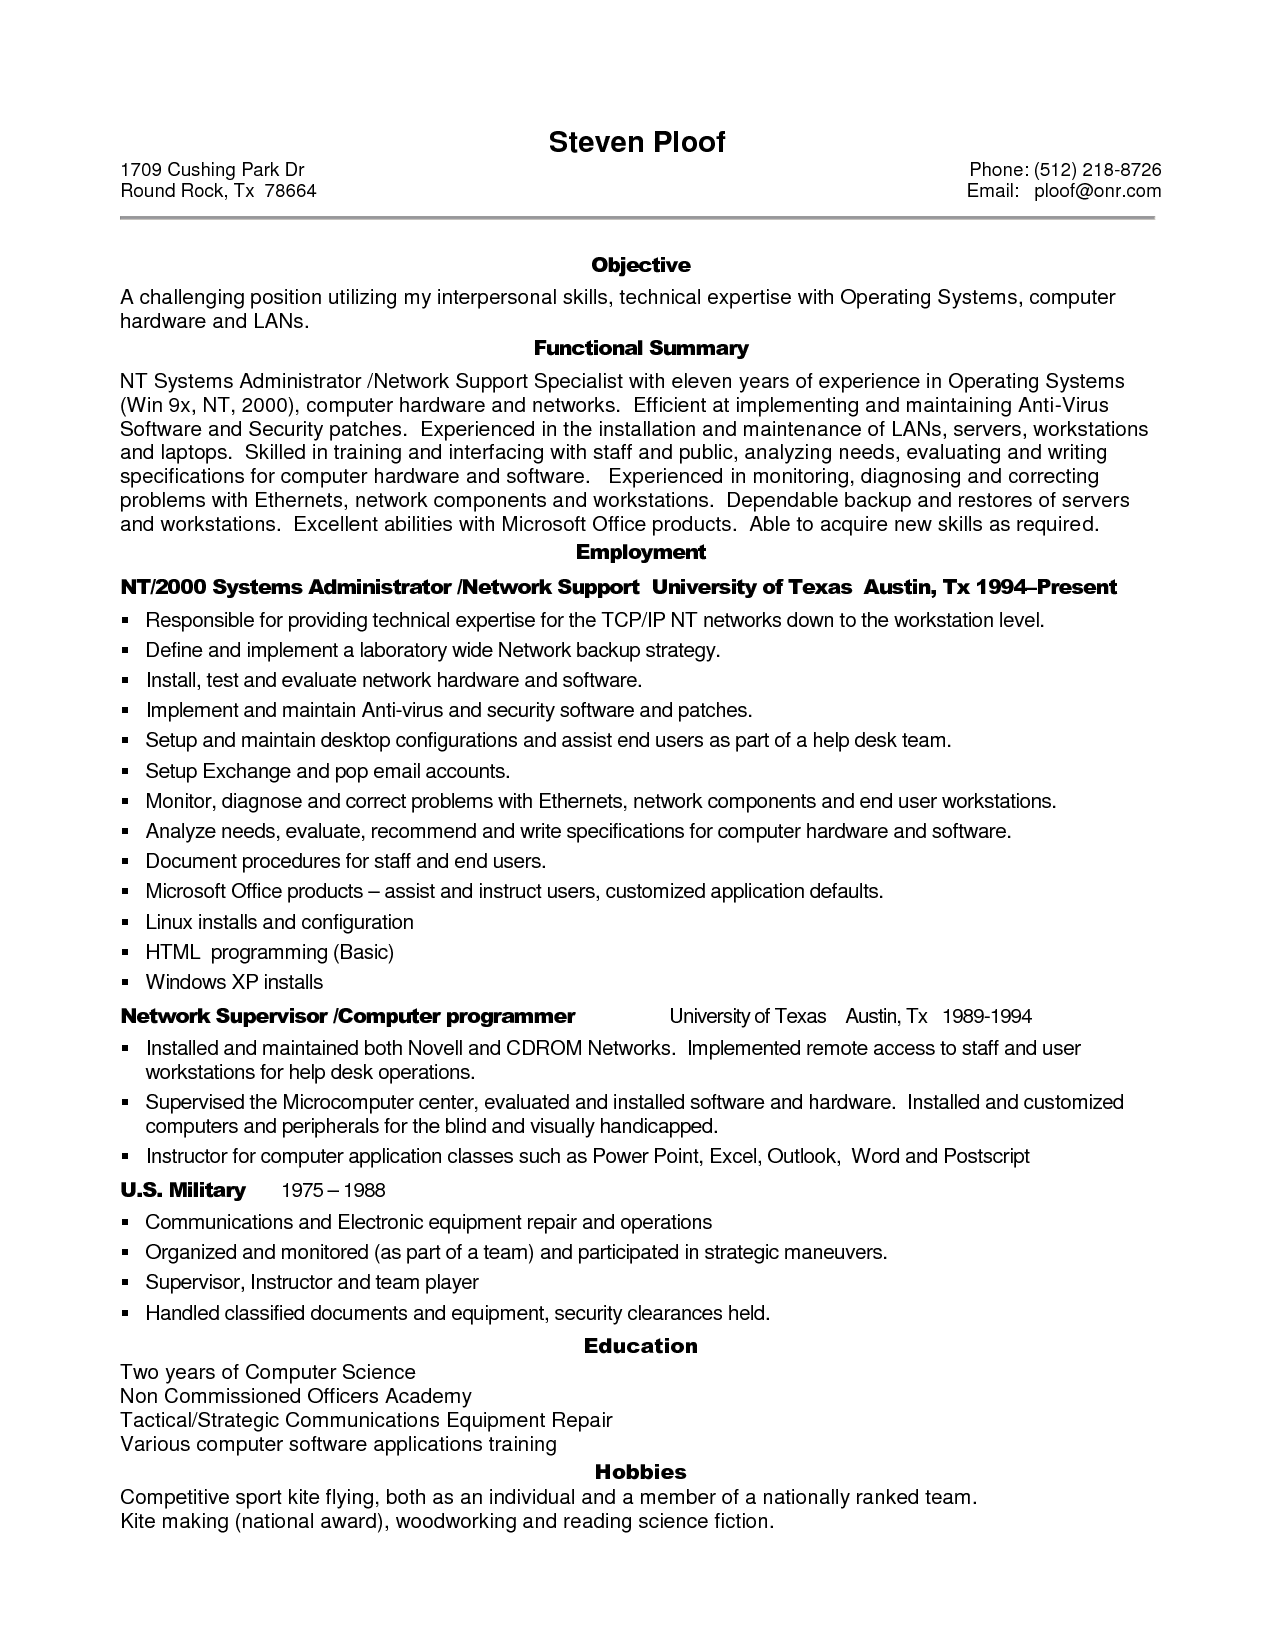 Charming Sample Resume For Experienced It Professional Sample Resume For Experienced  It Professional, Resume Tips For Throughout Resume Experience